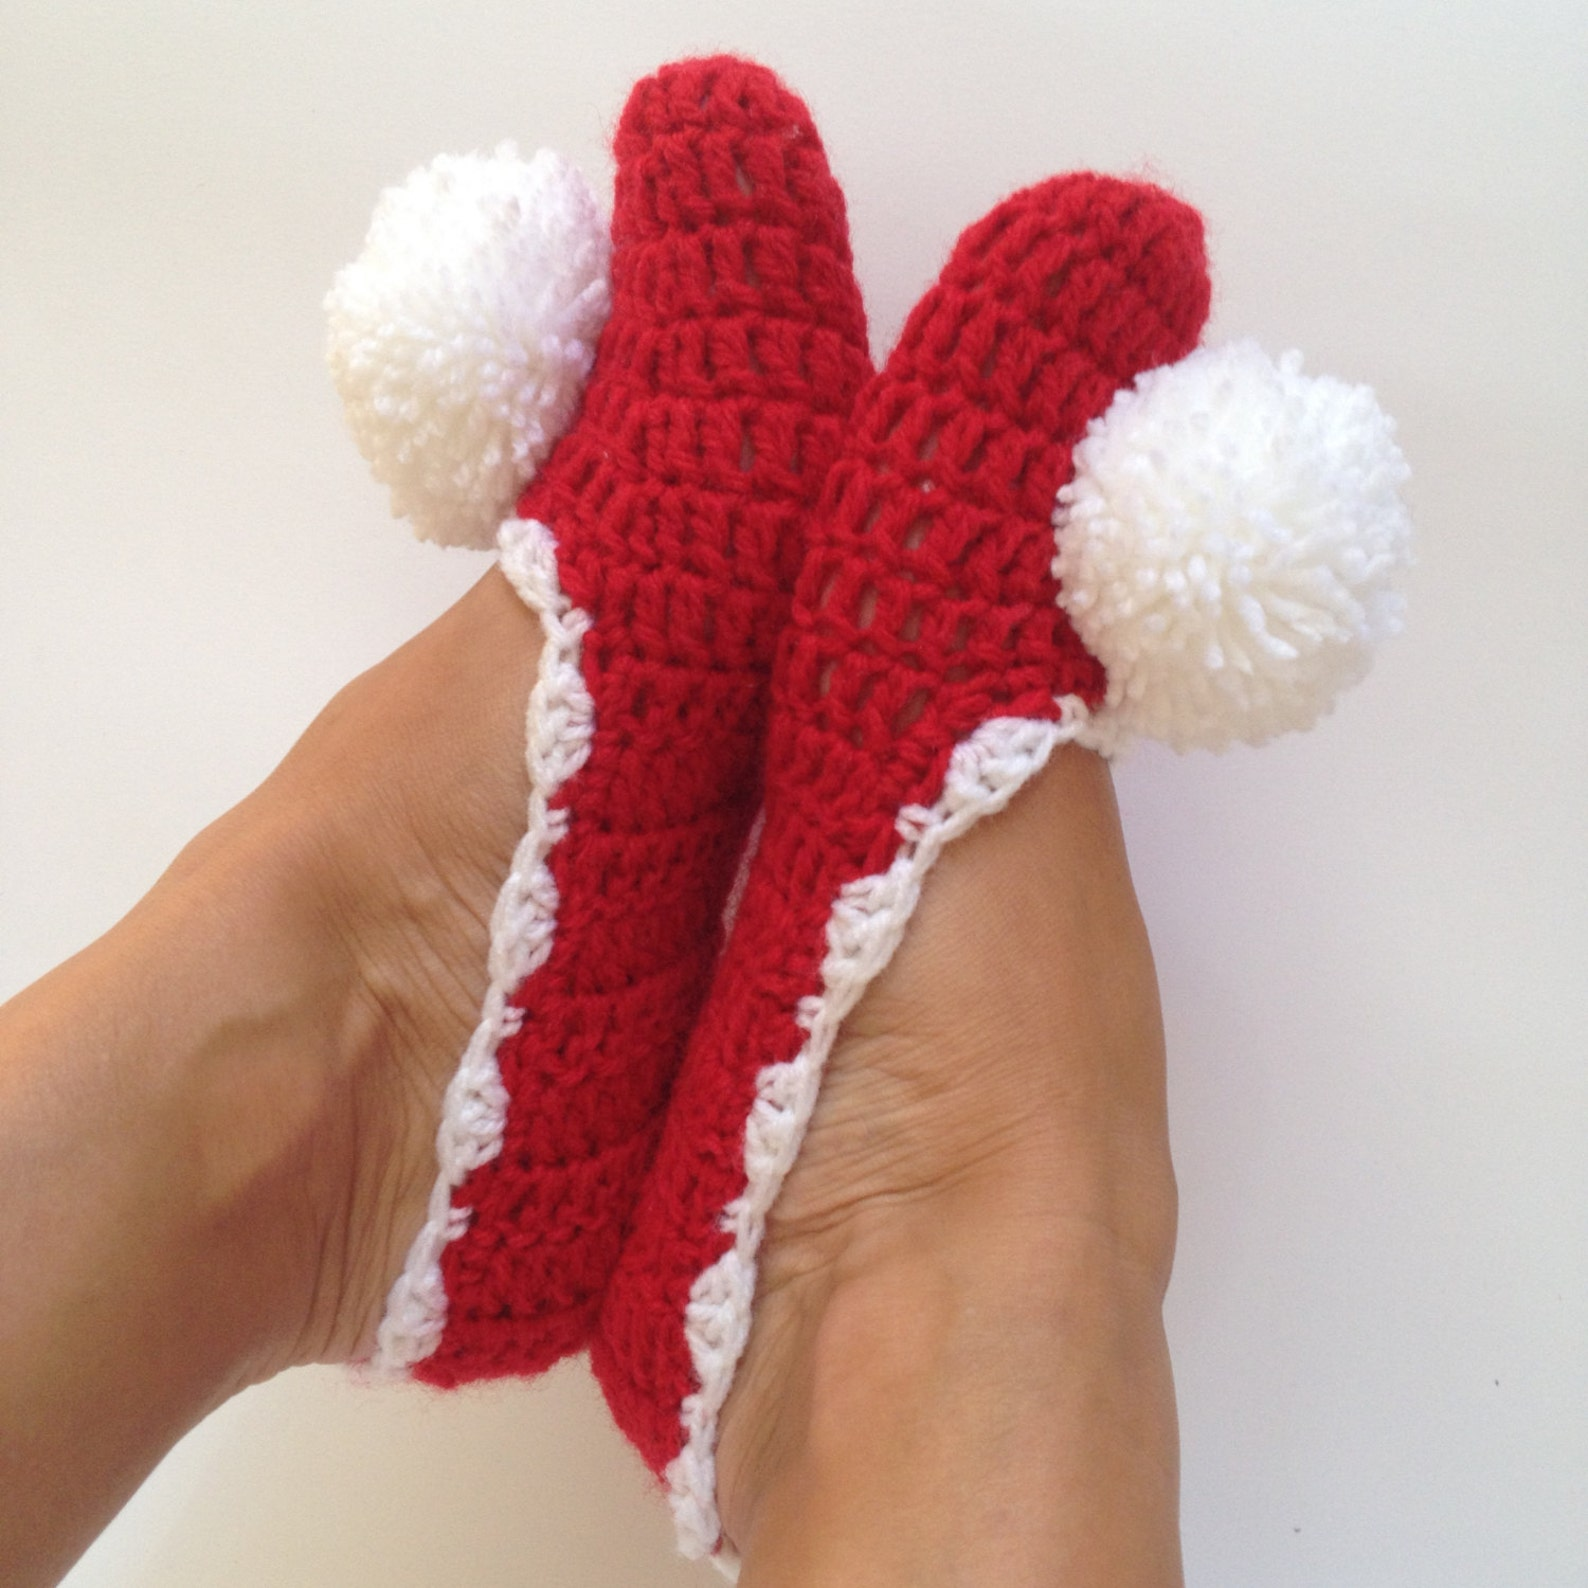 crochet slippers,handmade slippers,crochet women slippers,cozy slippers,home silppers,ballet flats,dance shoes,home shoes